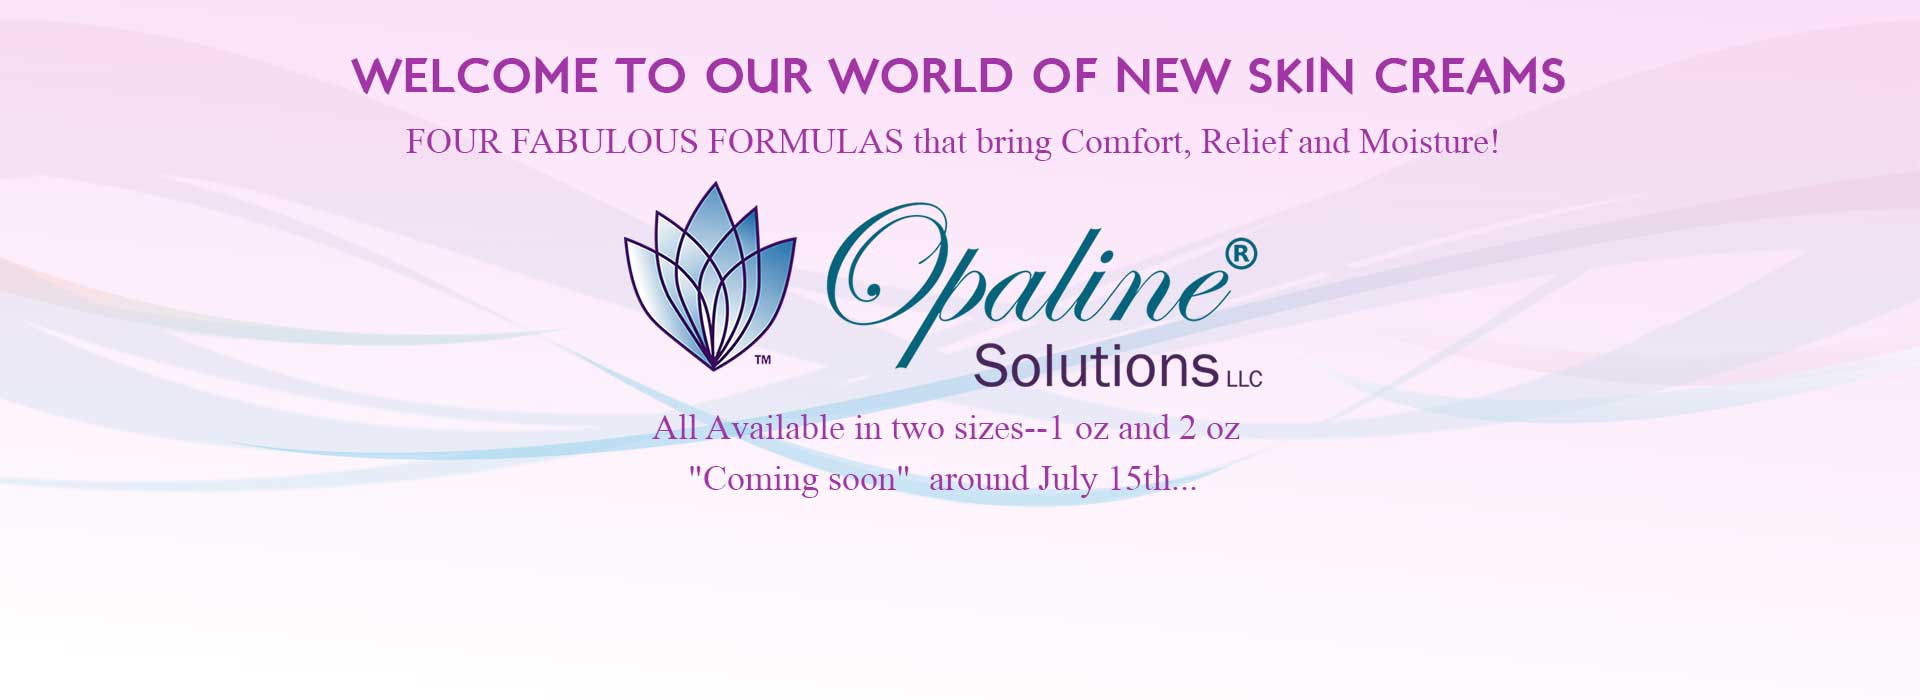 Opaline Solutions New Products